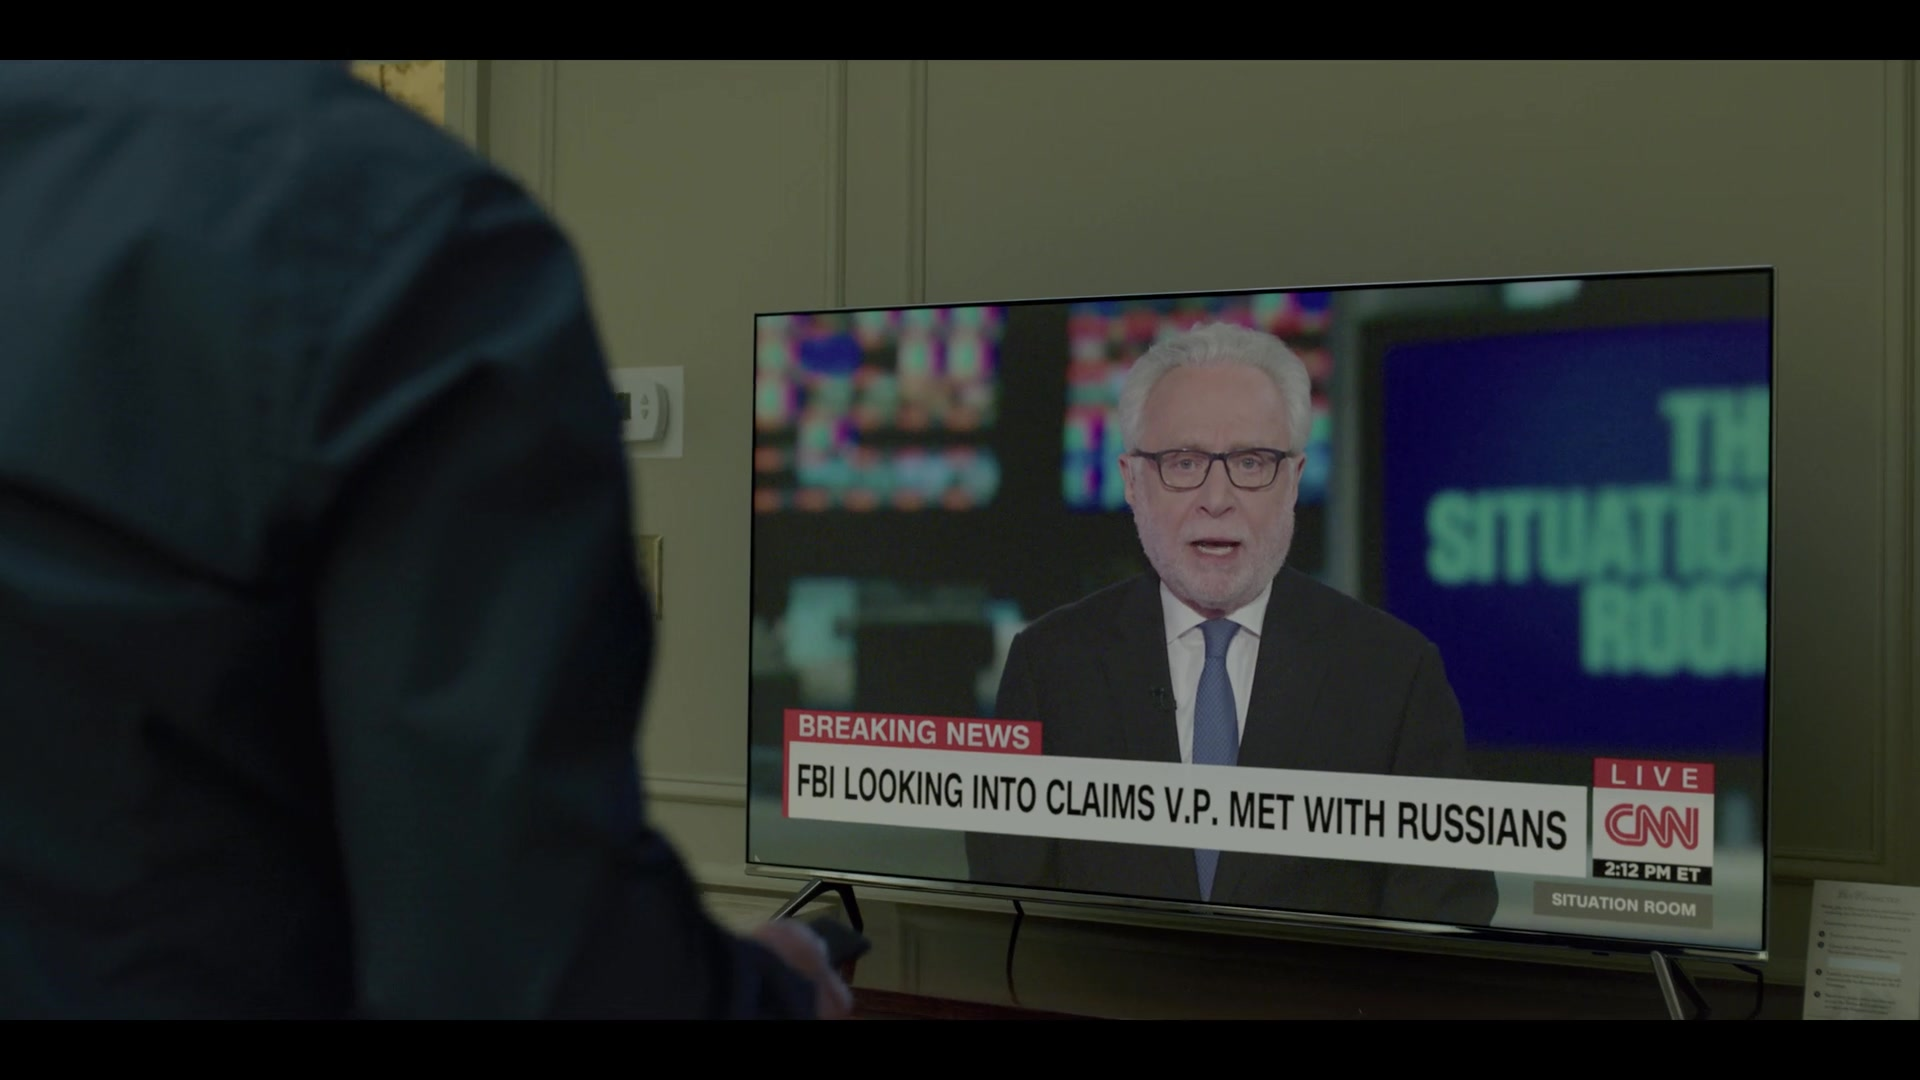 Cnn Tv Channel In House Of Cards Season 6 Episode 5 Chapter 70 2018